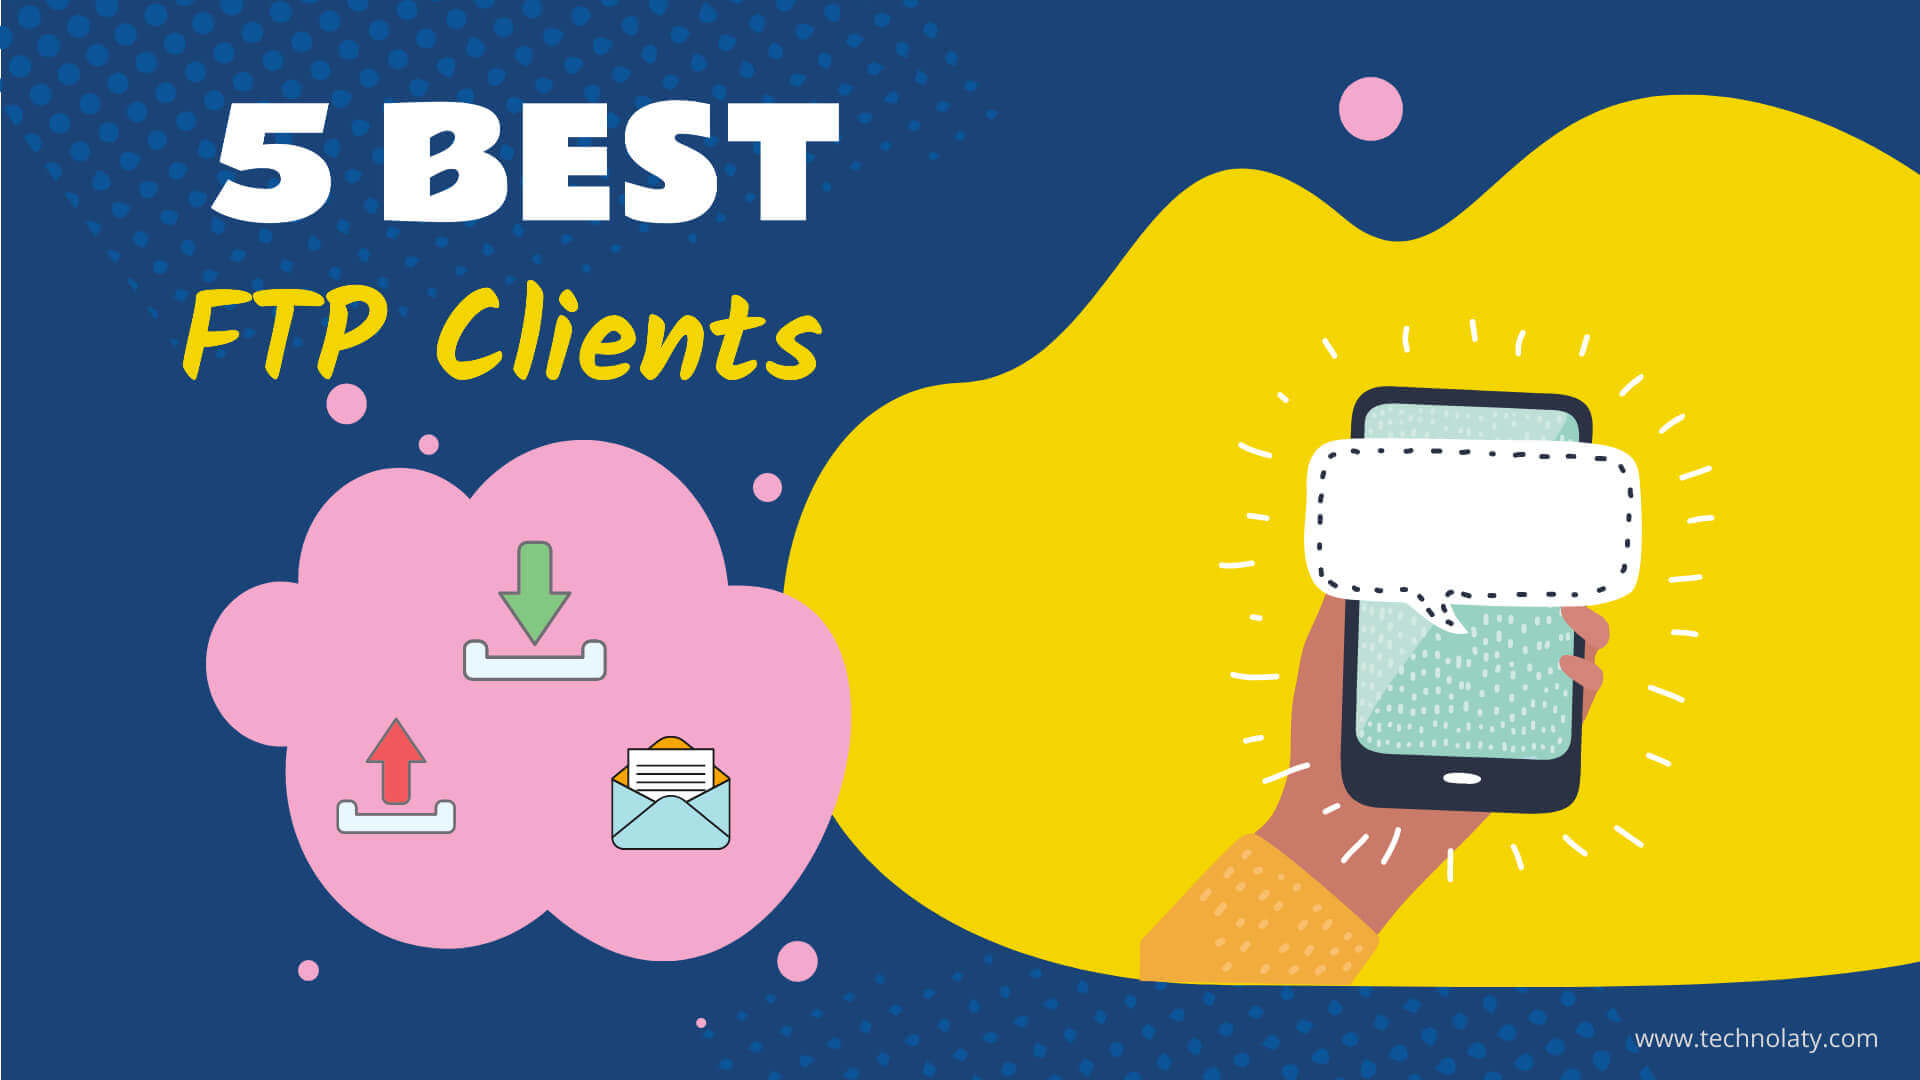 Top FTP Clients For Android